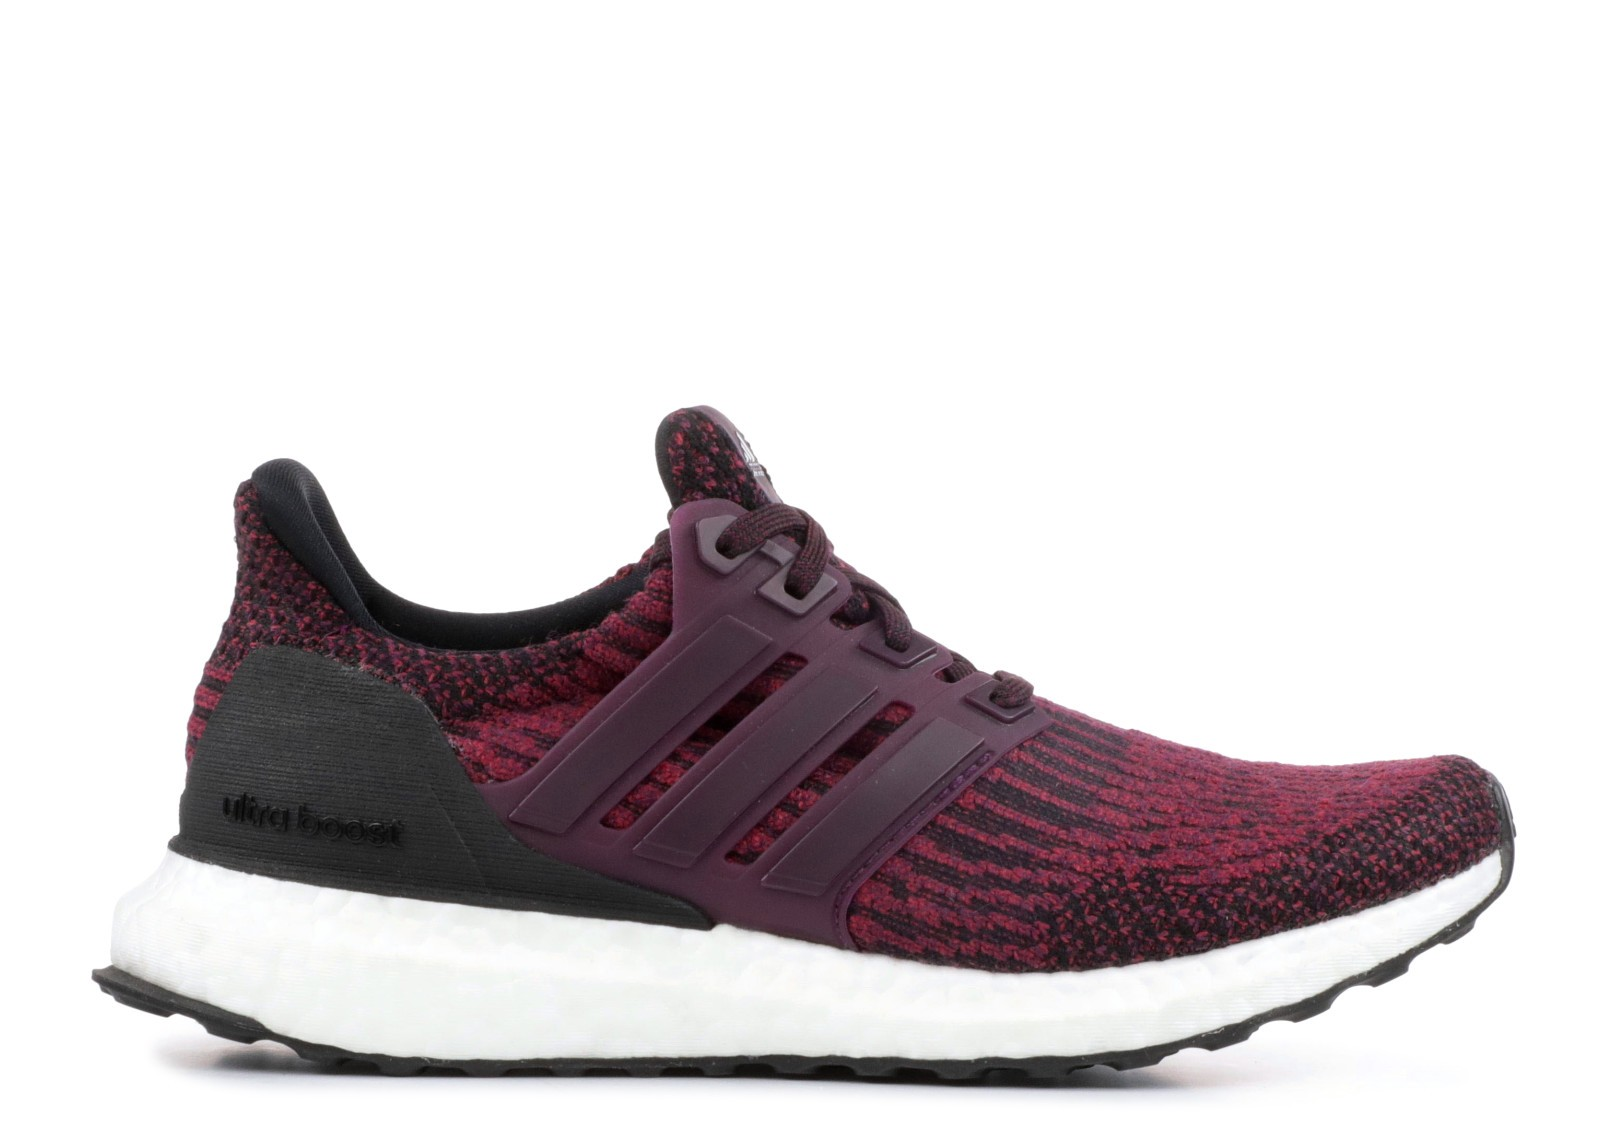 info for 21c69 0c1a0 adidas Ultra Boost 3.0 Skor S82058 - Dam